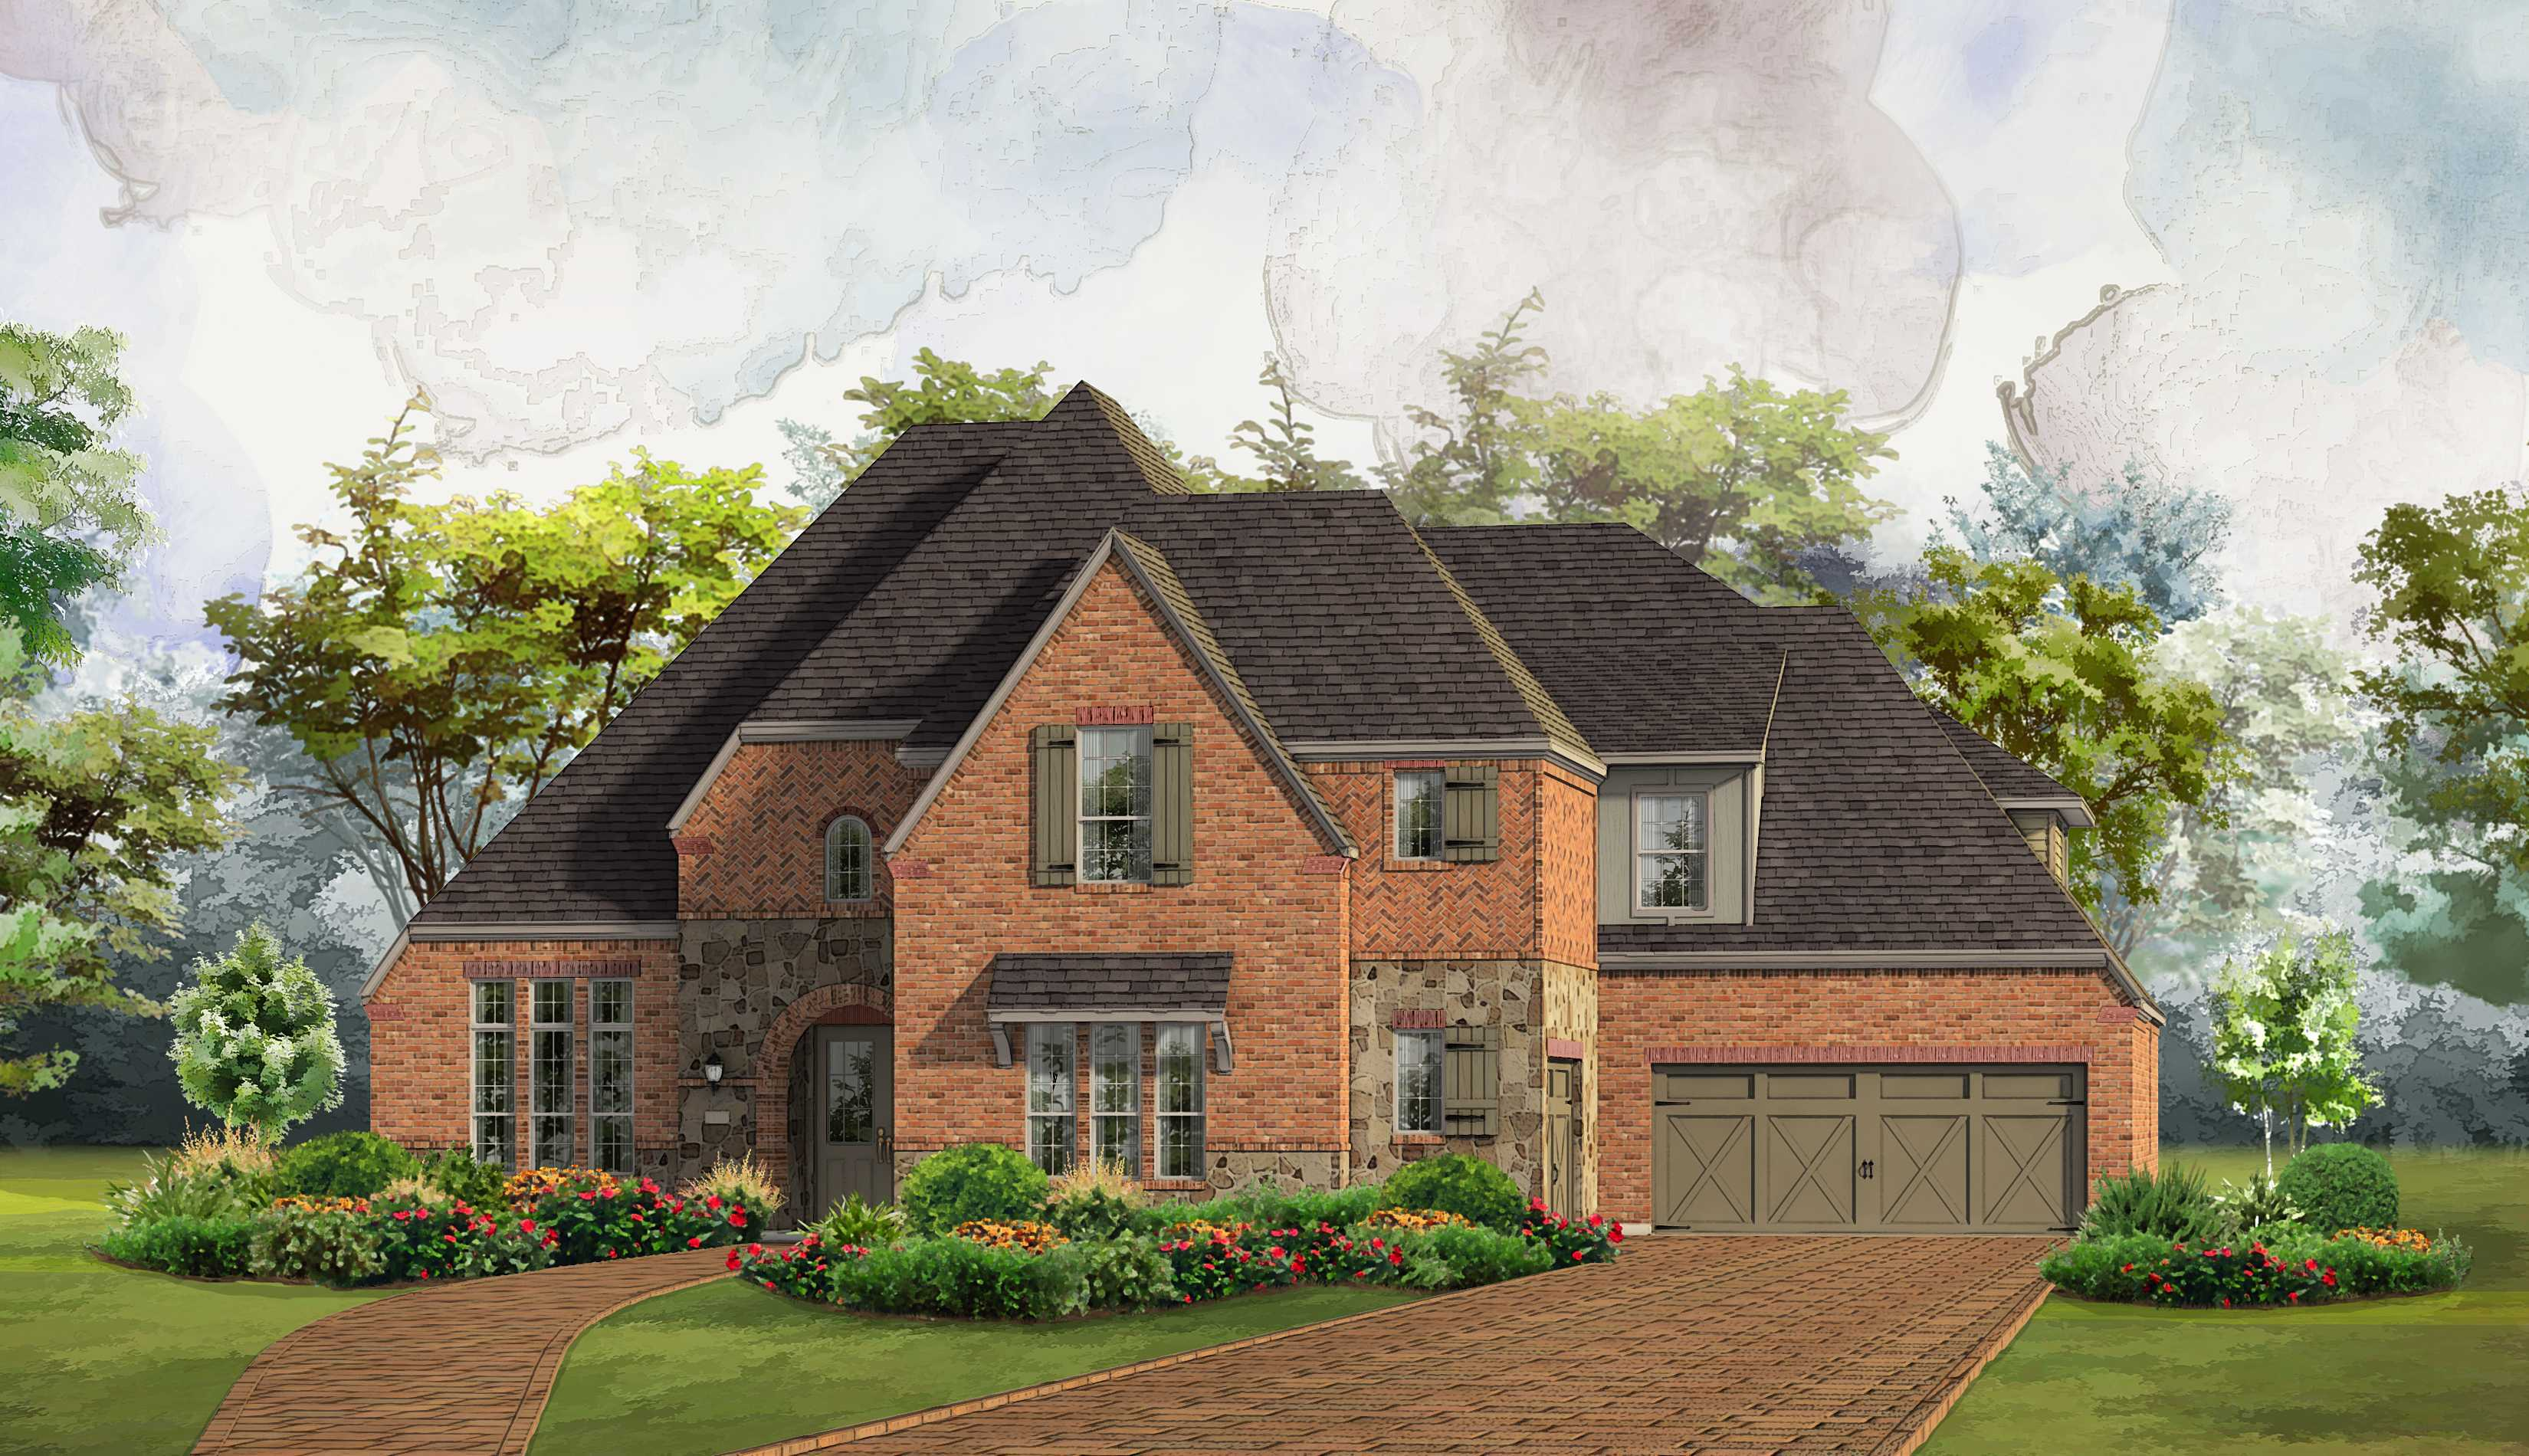 Single Family for Active at Whitley Place - Plan 6781 801 Cliff Creek Dr. Prosper, Texas 75078 United States